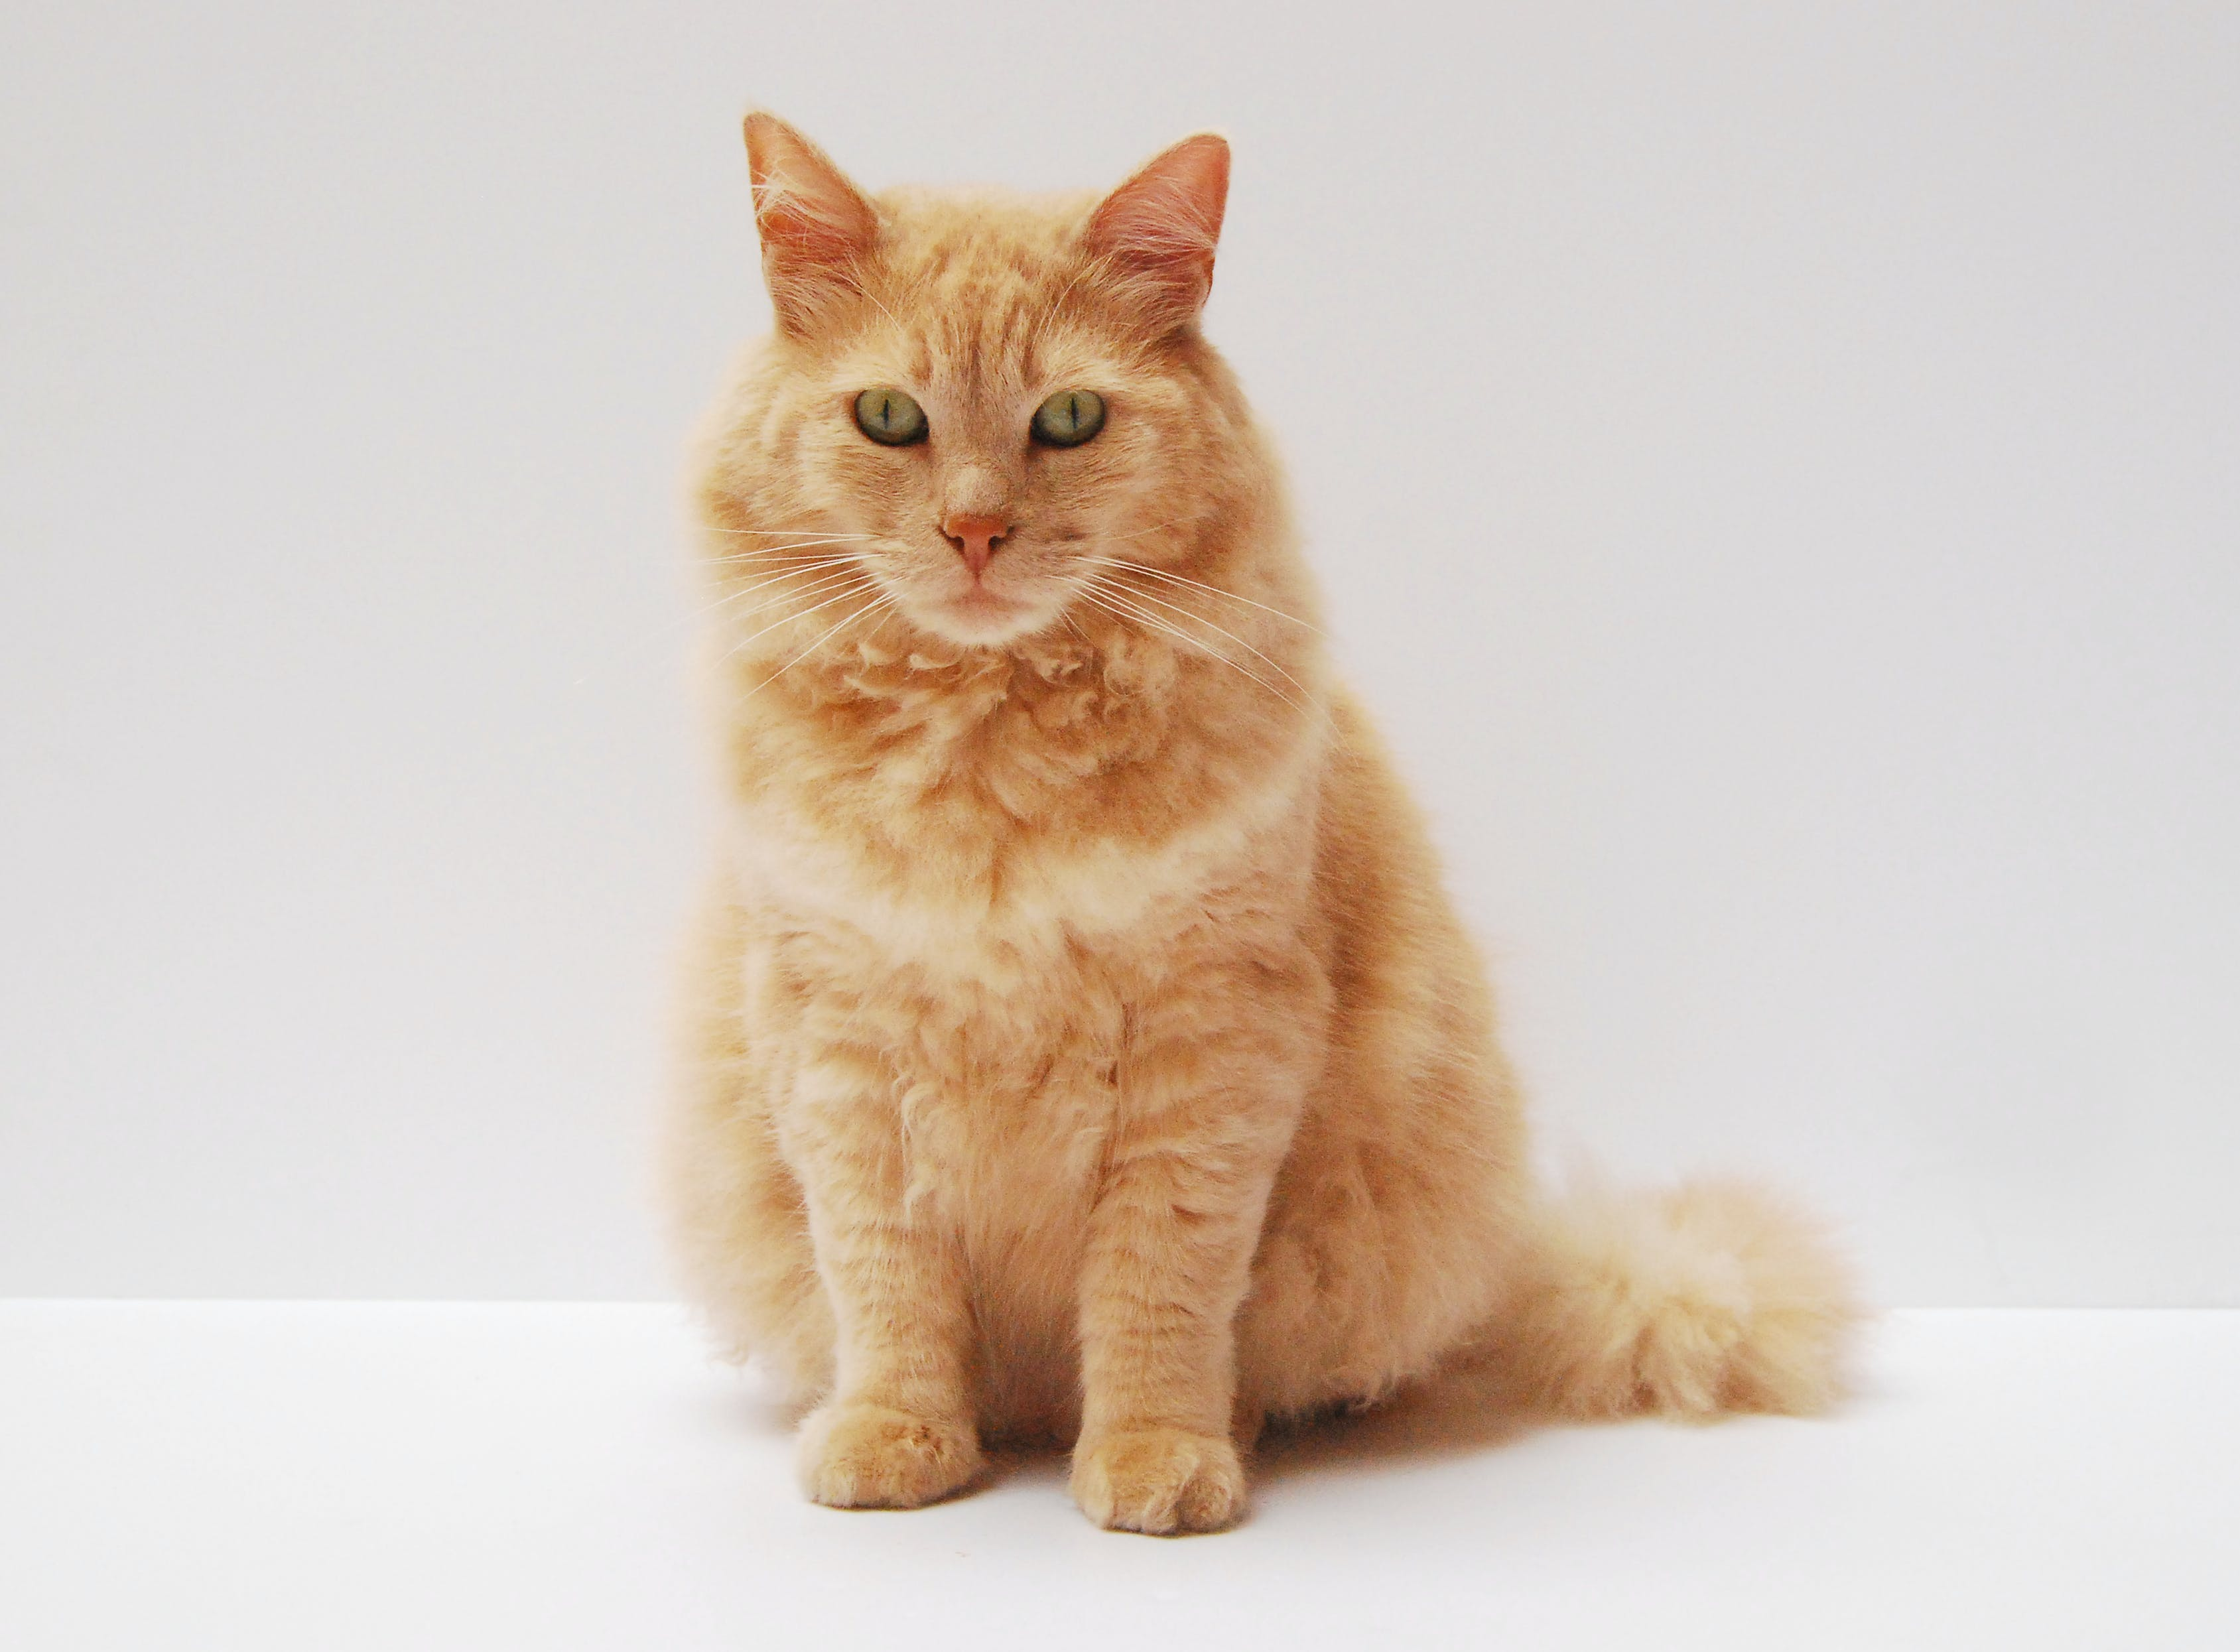 Orange Cat Sitting on White Surface